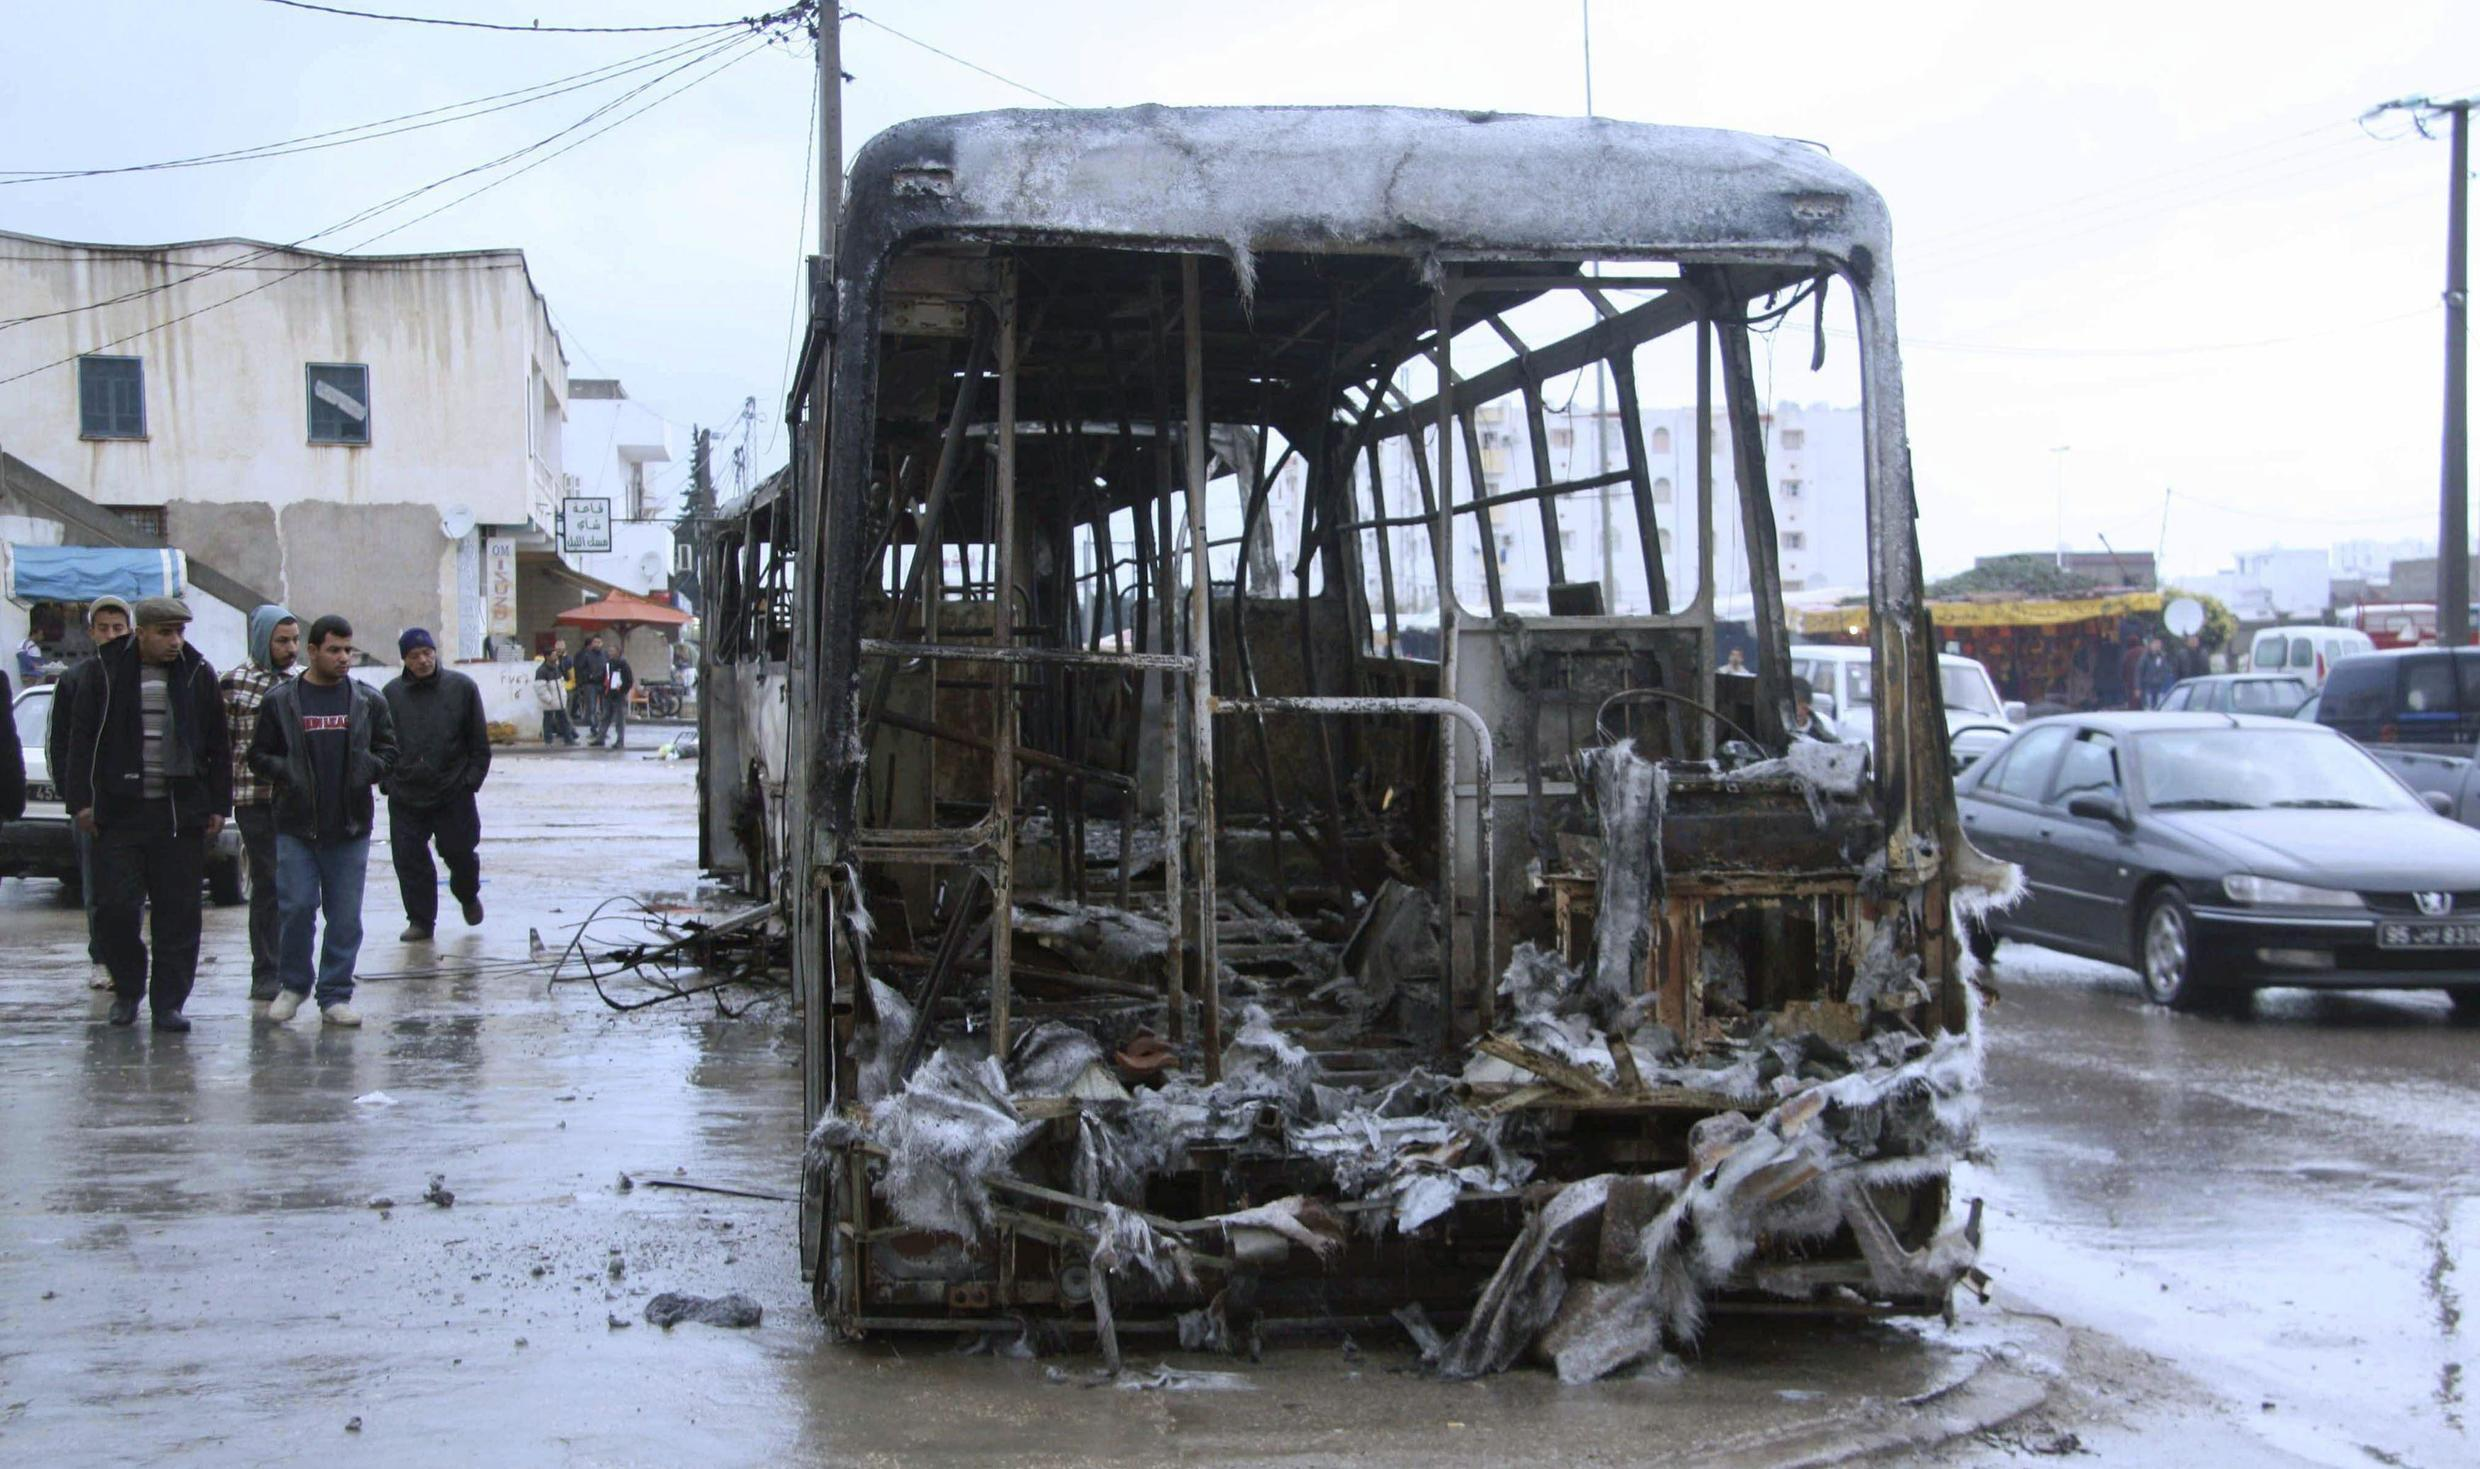 People walk past wreckage of bus which was damaged during recent clashes with police, on main square in Cite Ettadhamen near Tunis